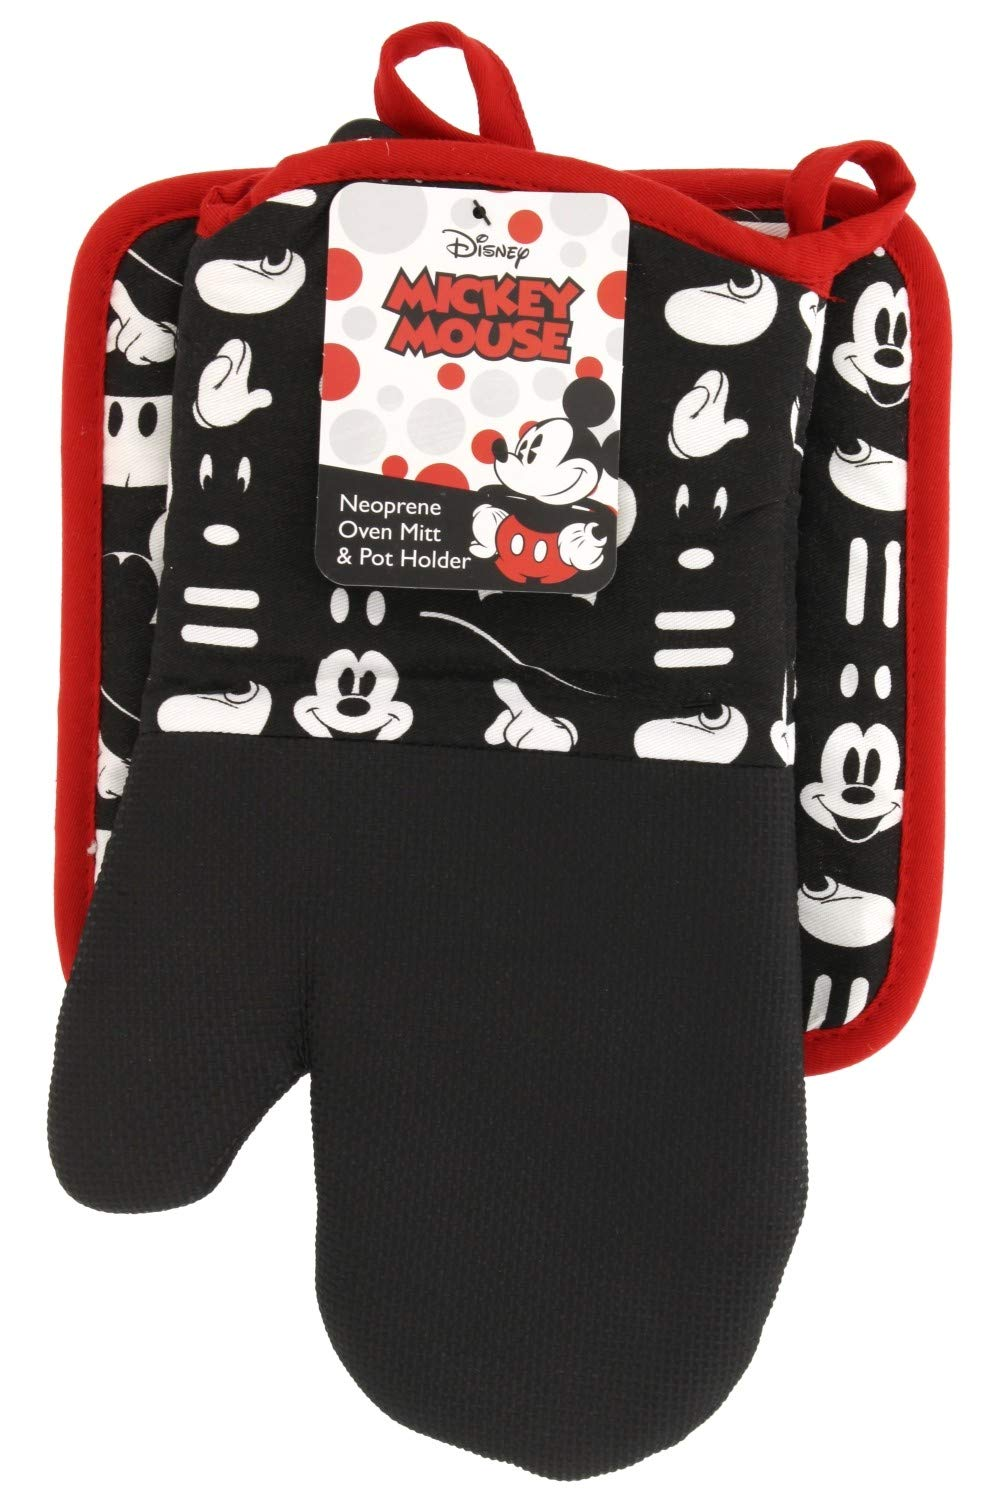 Disney Puppet Oven Mitt & Potholder w/Neoprene for Easy Gripping, Heat Resistant up to 500 degrees F, Mickey Mouse Icon, Black